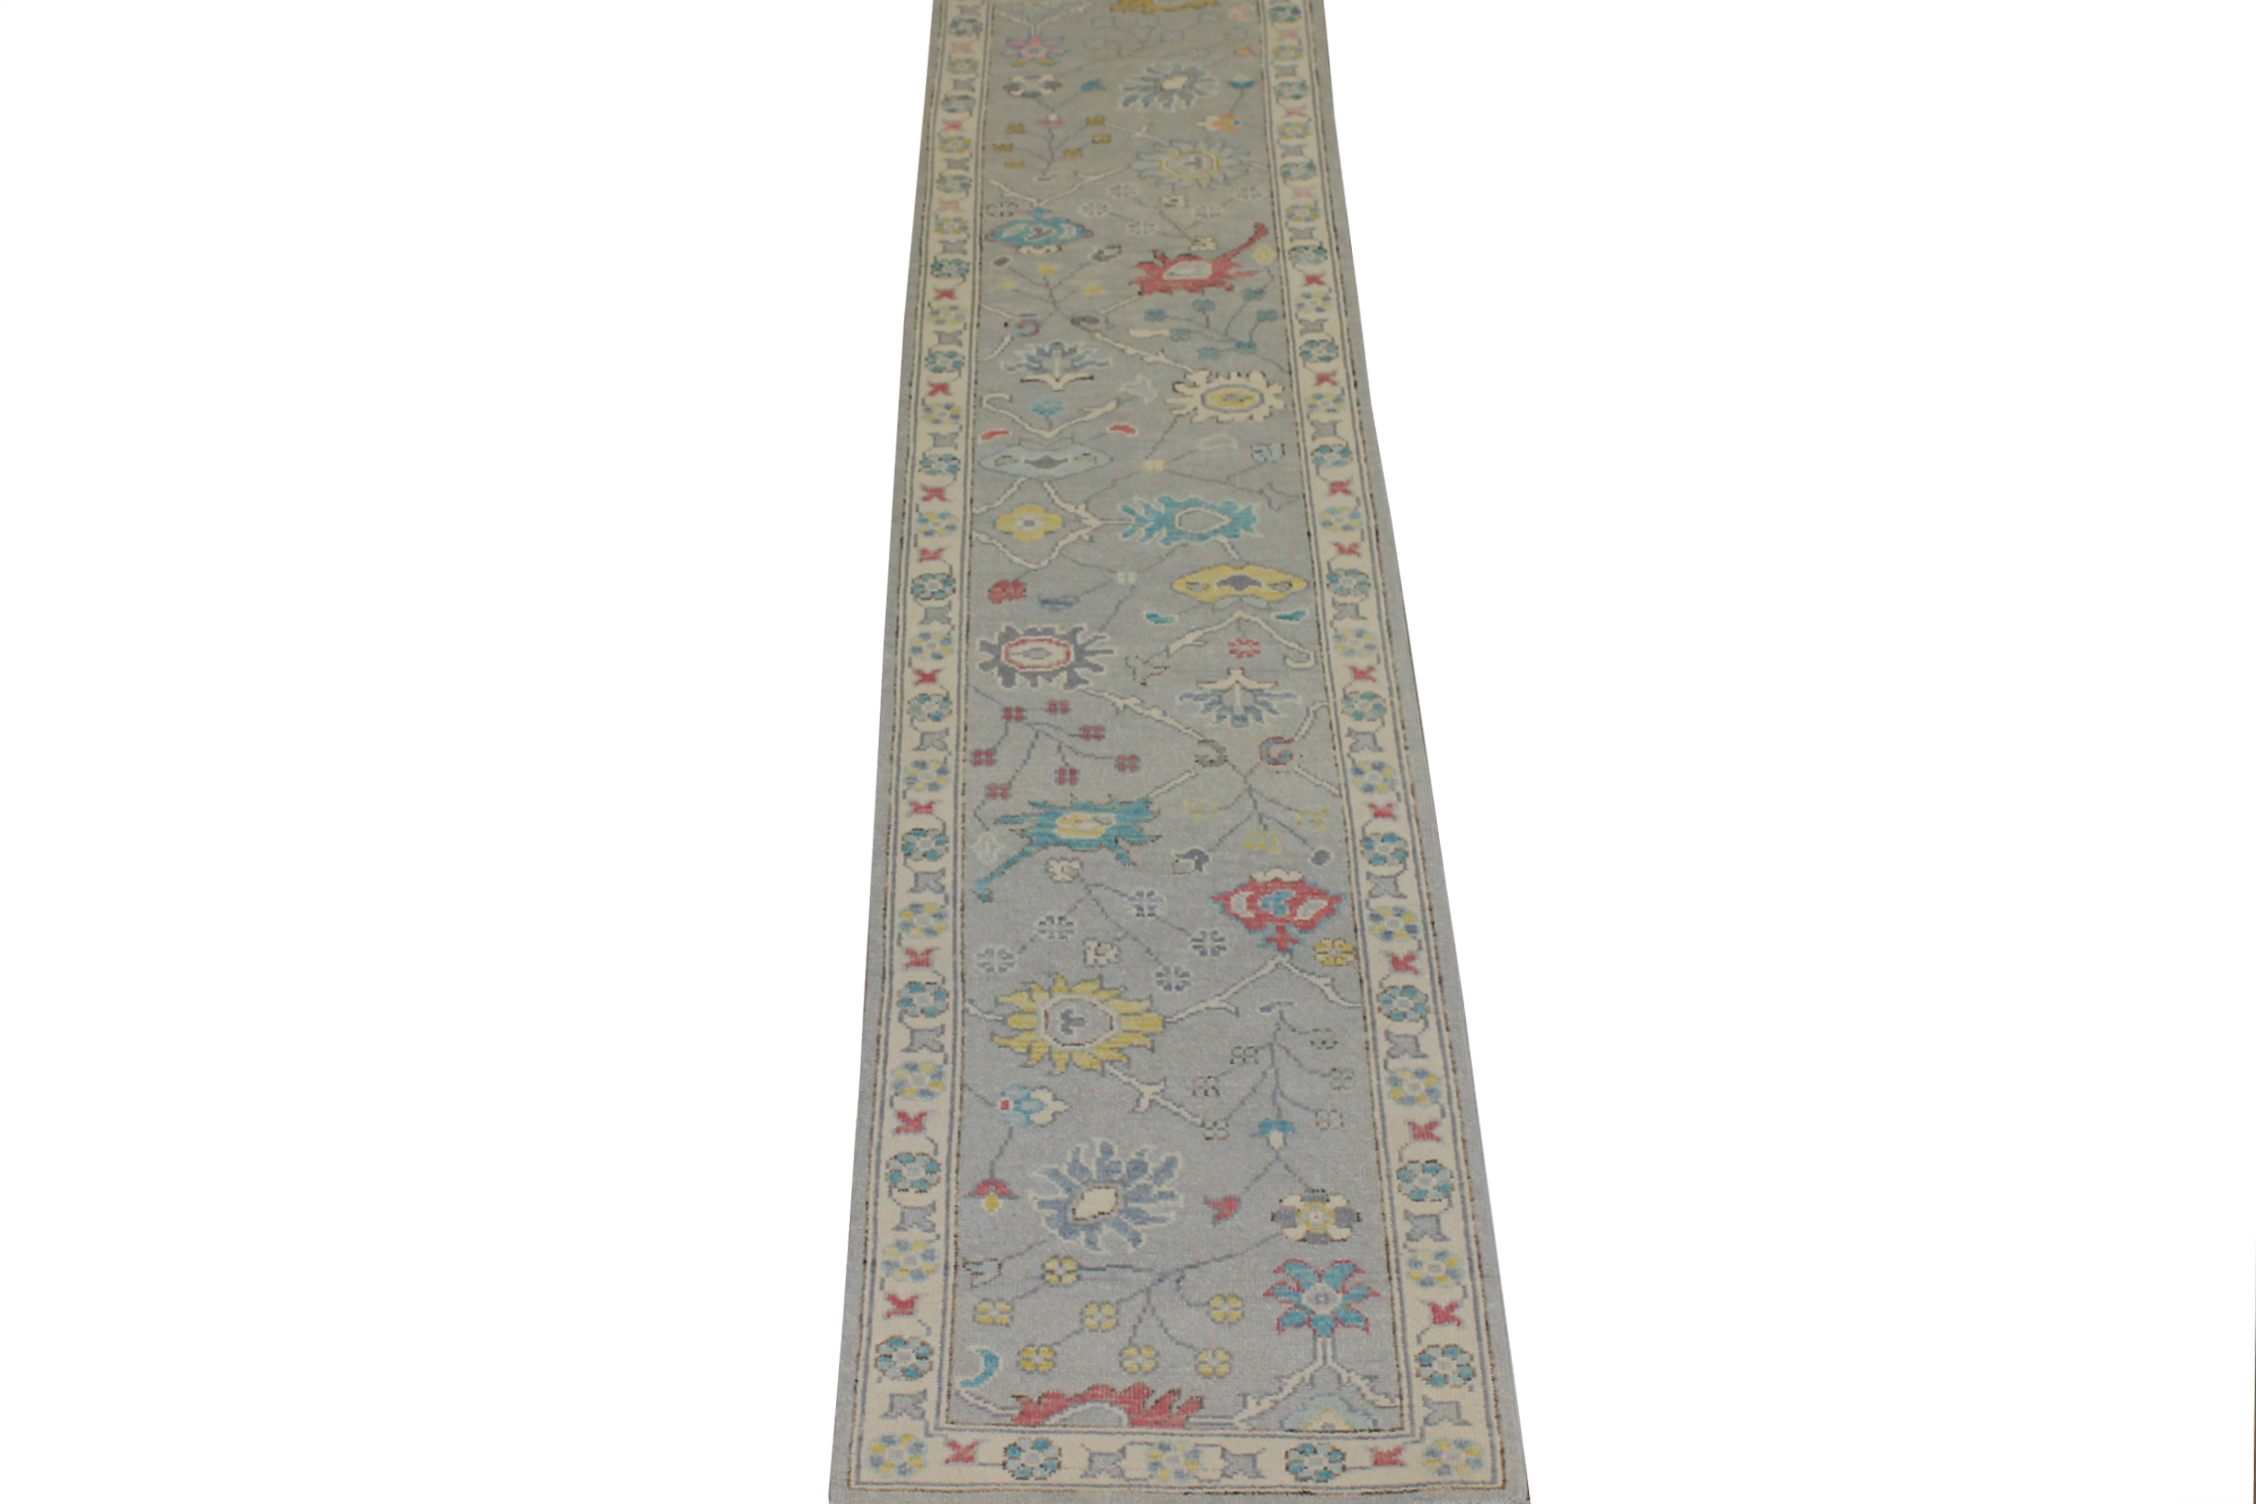 12 ft. Runner Oushak Hand Knotted Wool Area Rug - MR024424